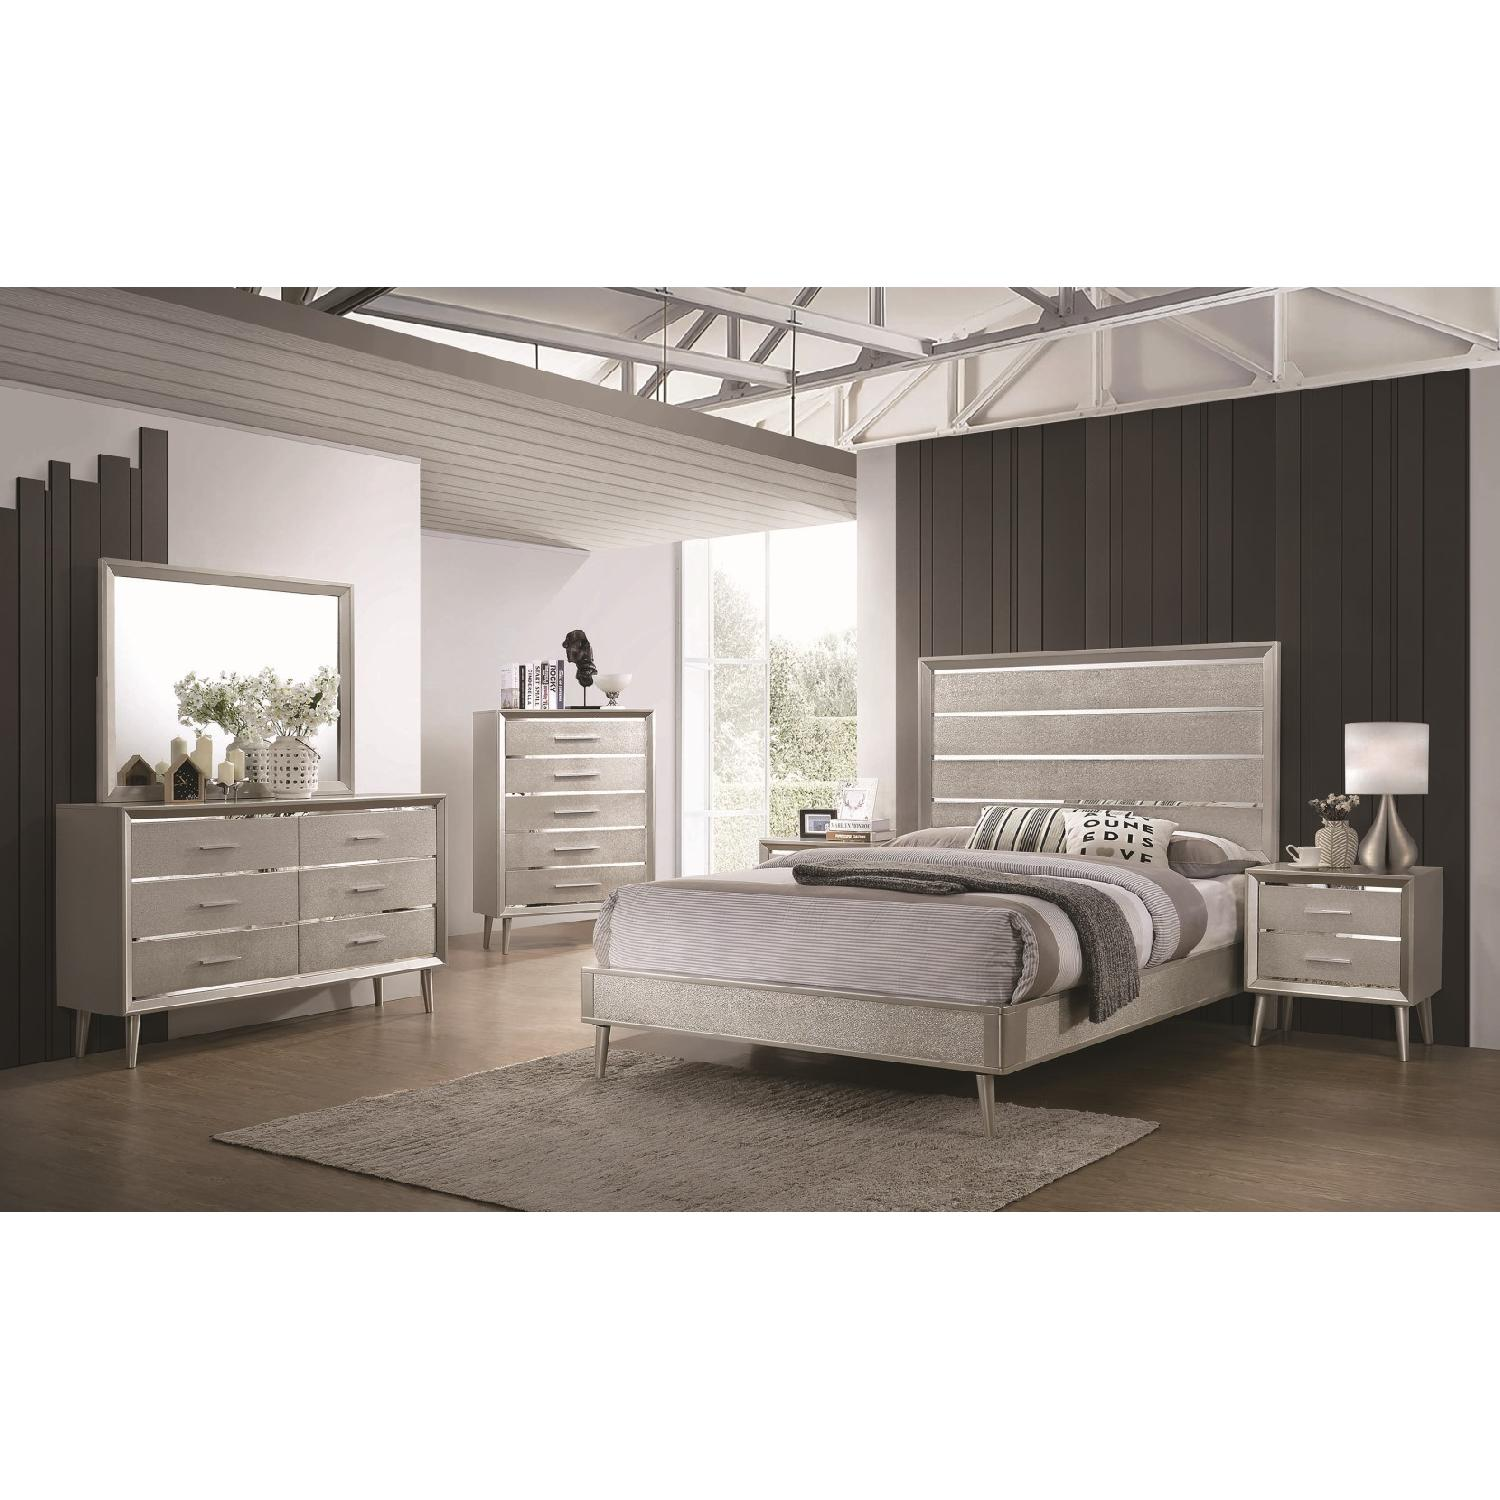 Mid Century Style King Bed in Metallic Silver Glitter Design - image-7